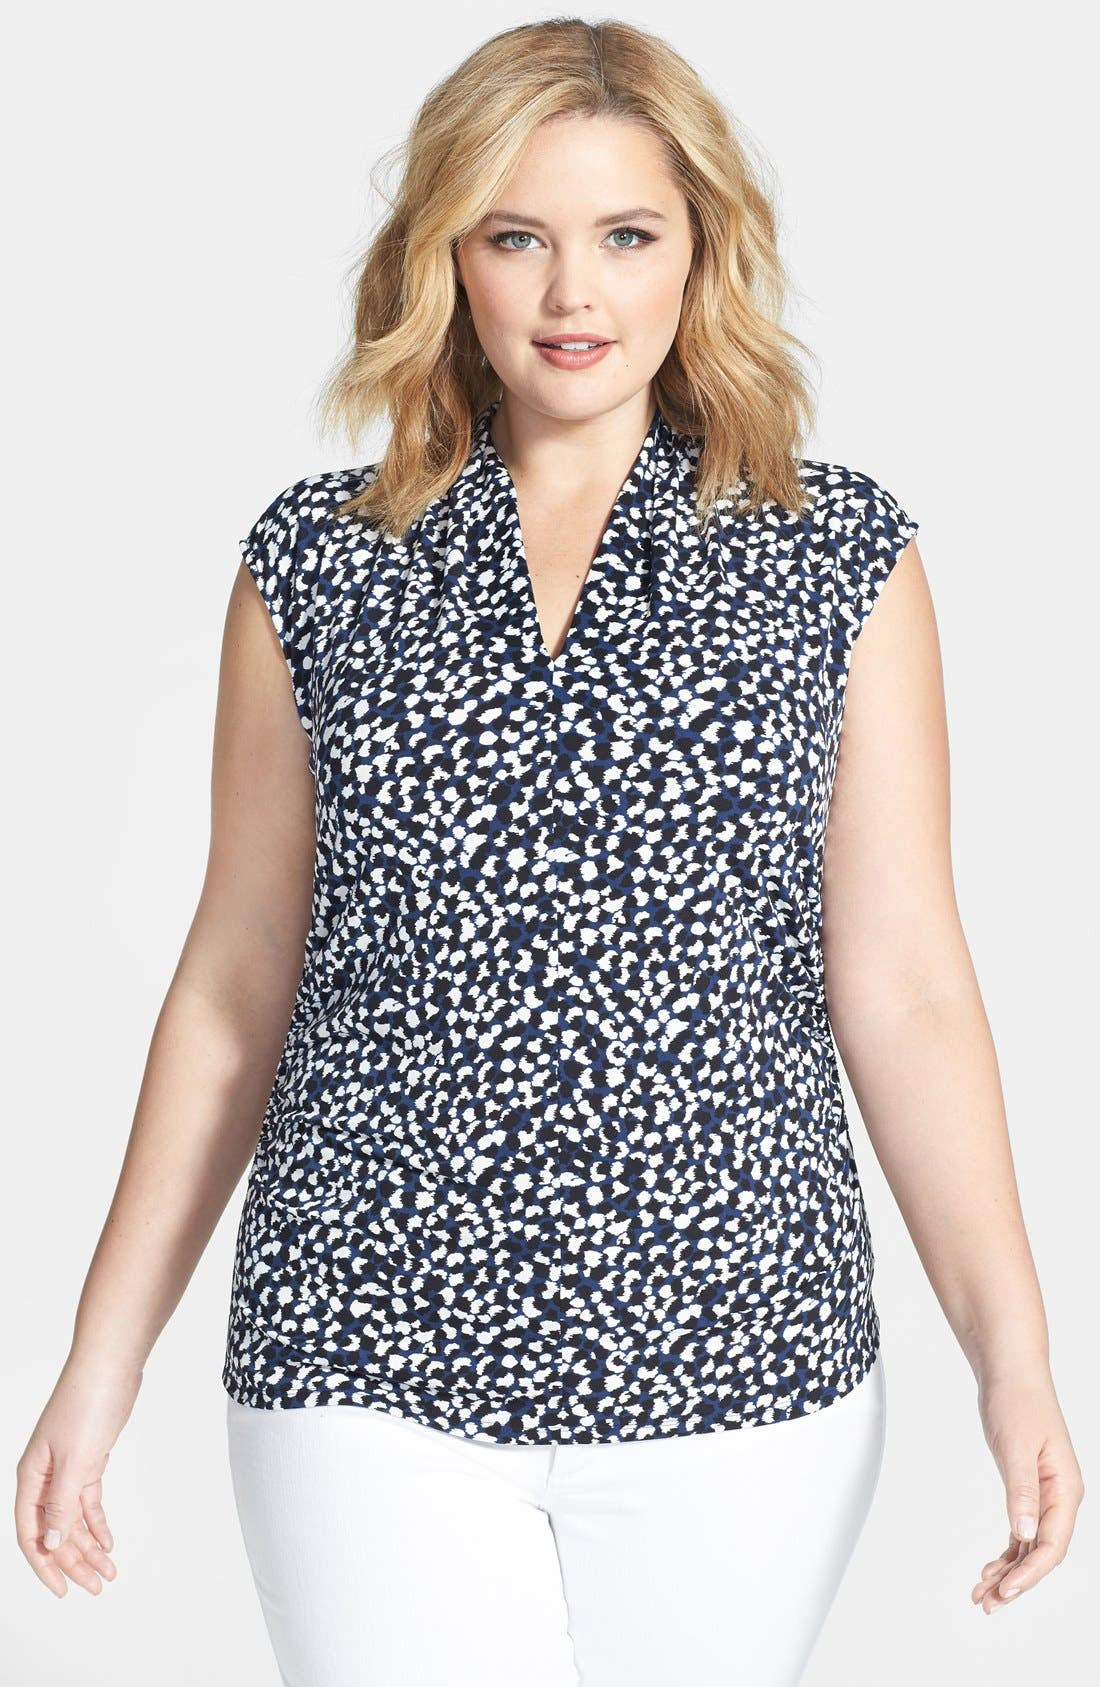 Alternate Image 1 Selected - Vince Camuto 'Doodle Dabs' Print Pleat Front V-Neck Top (Plus Size)